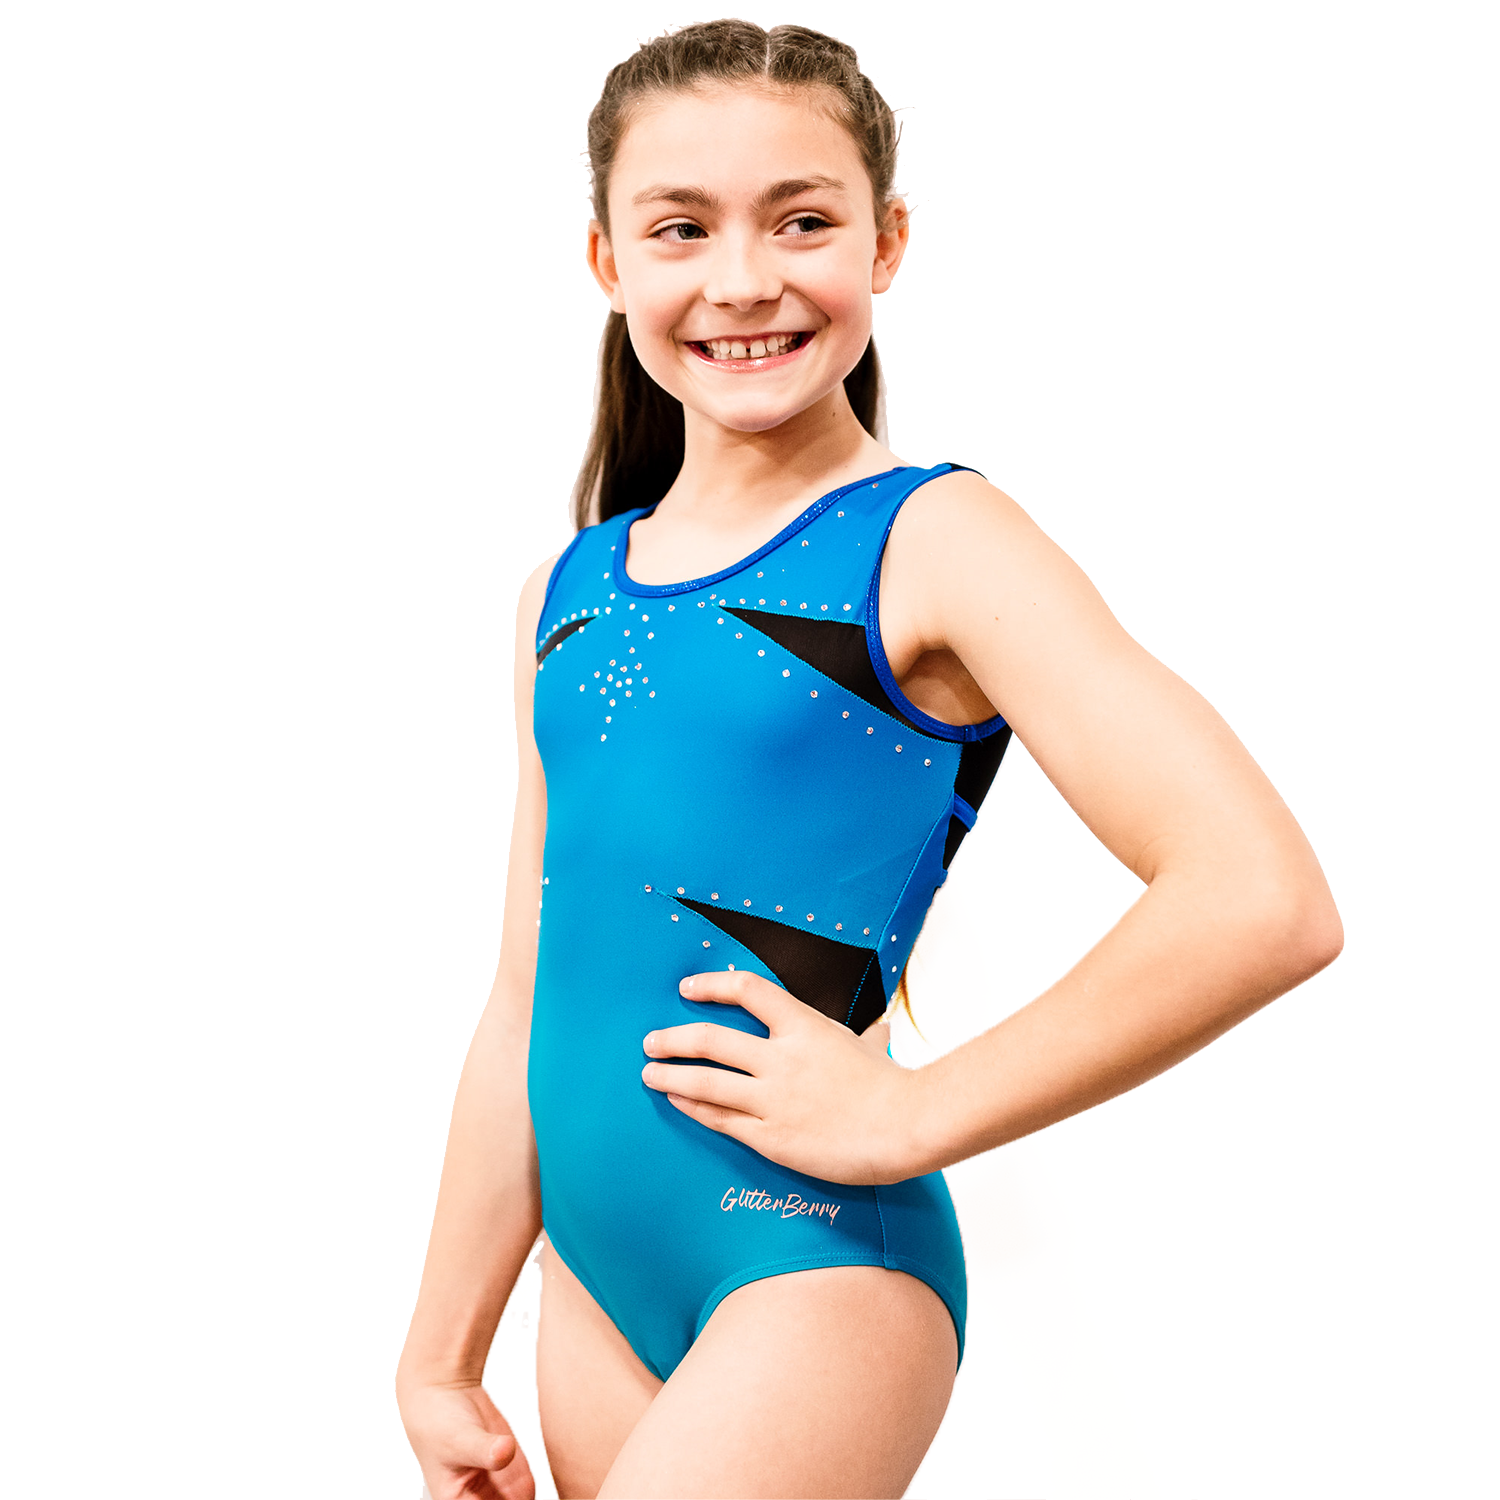 Izzyberry Girls Blue Gymnastics Leotard